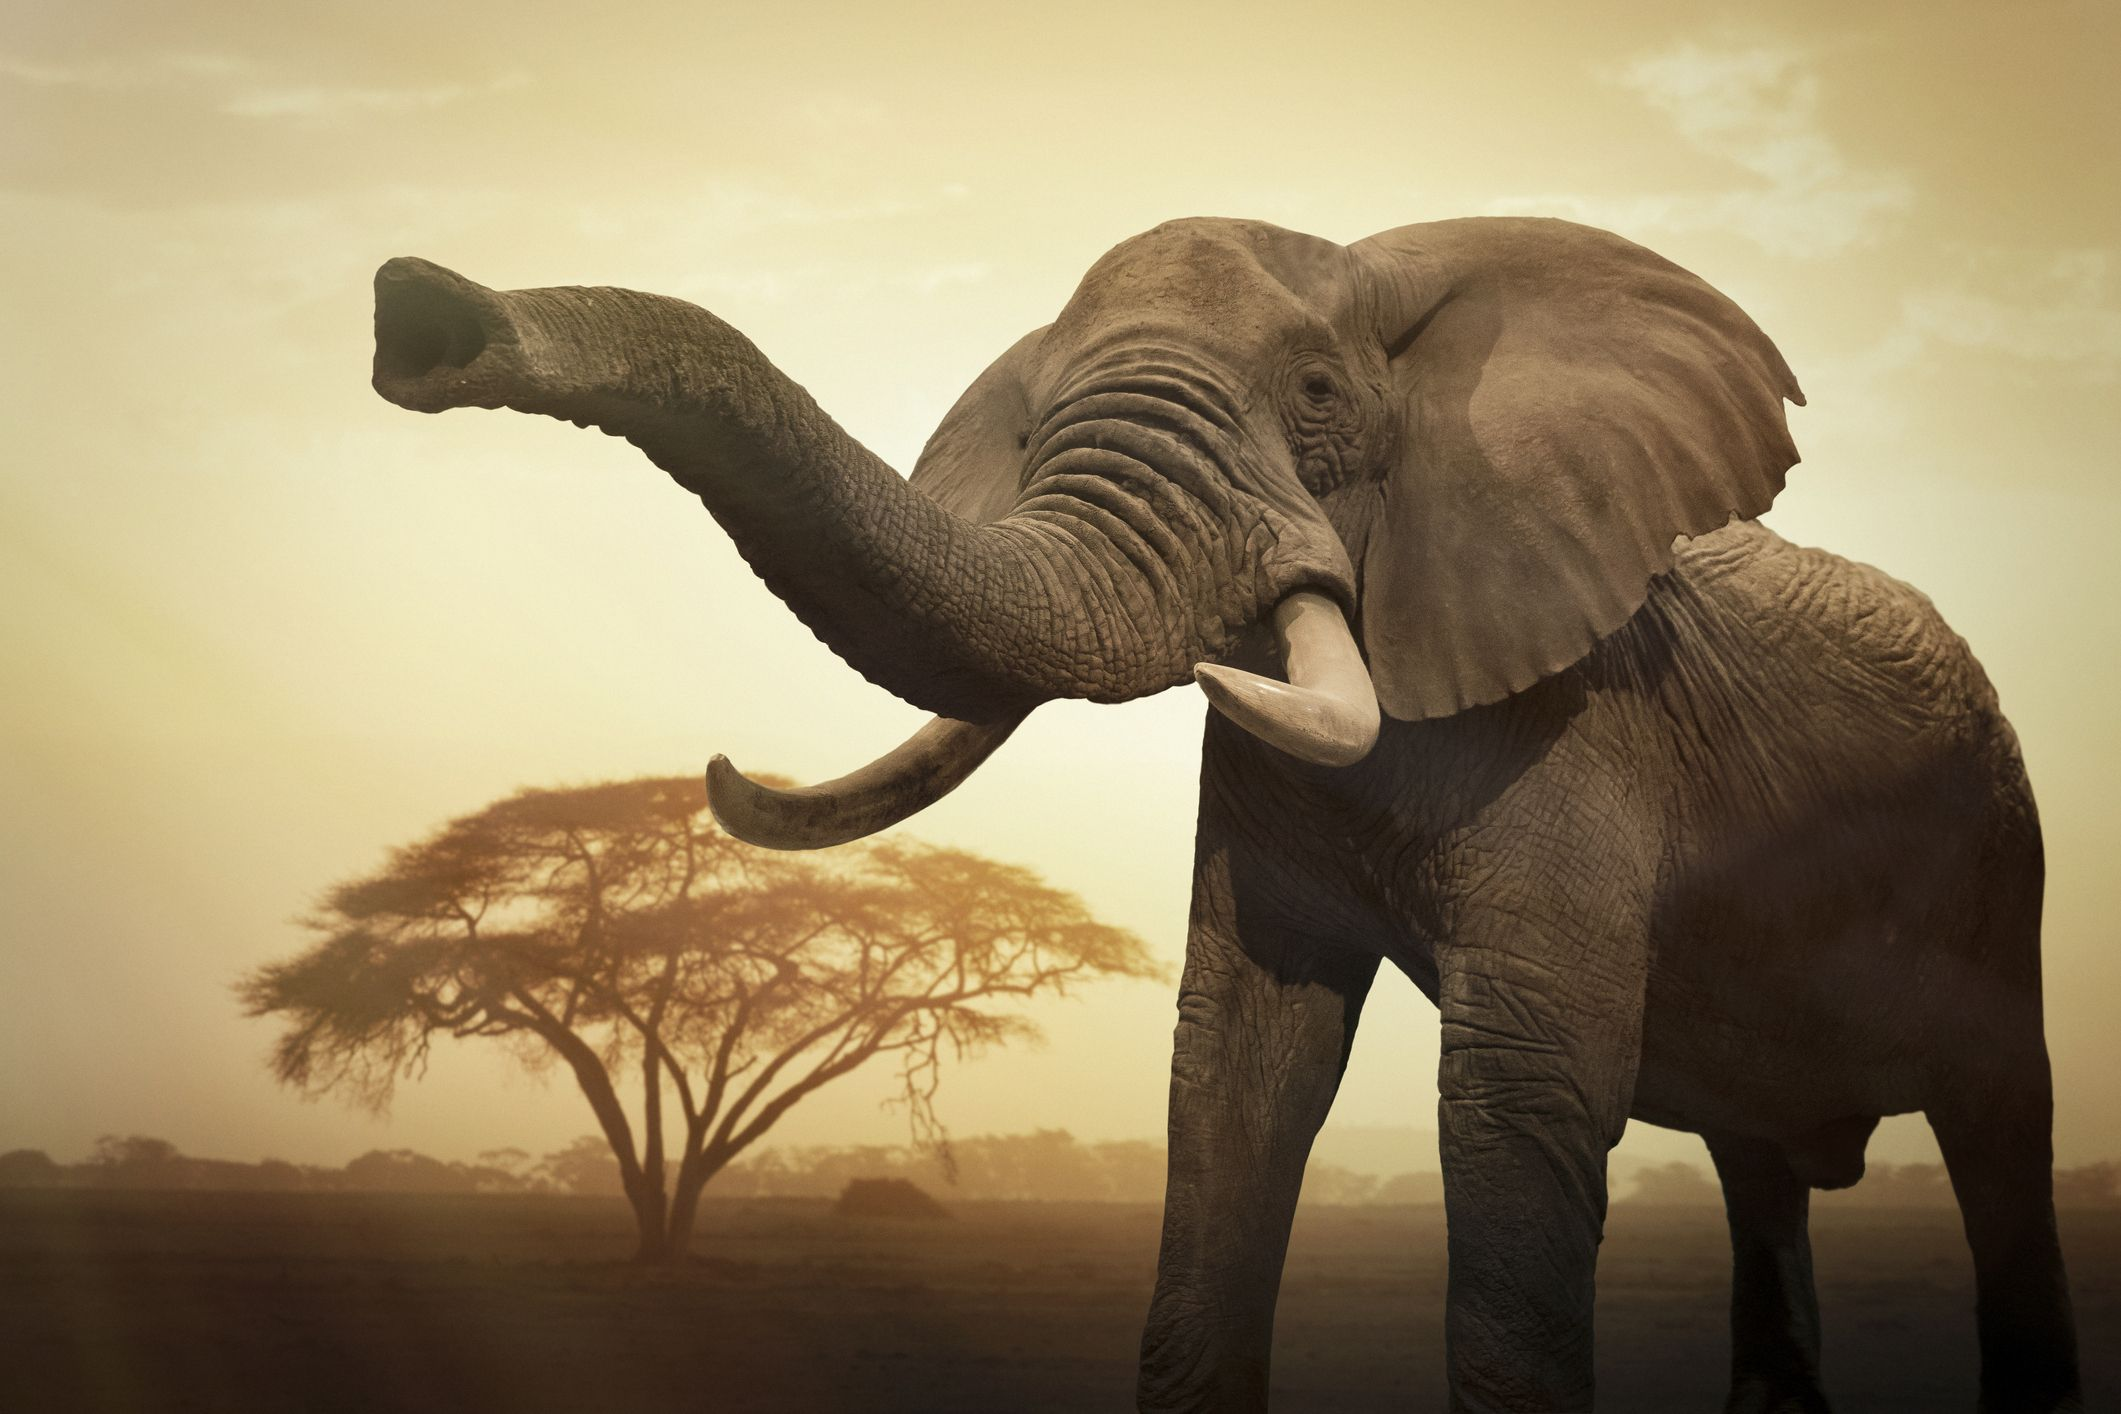 Elephants are the smartest land animals out there.